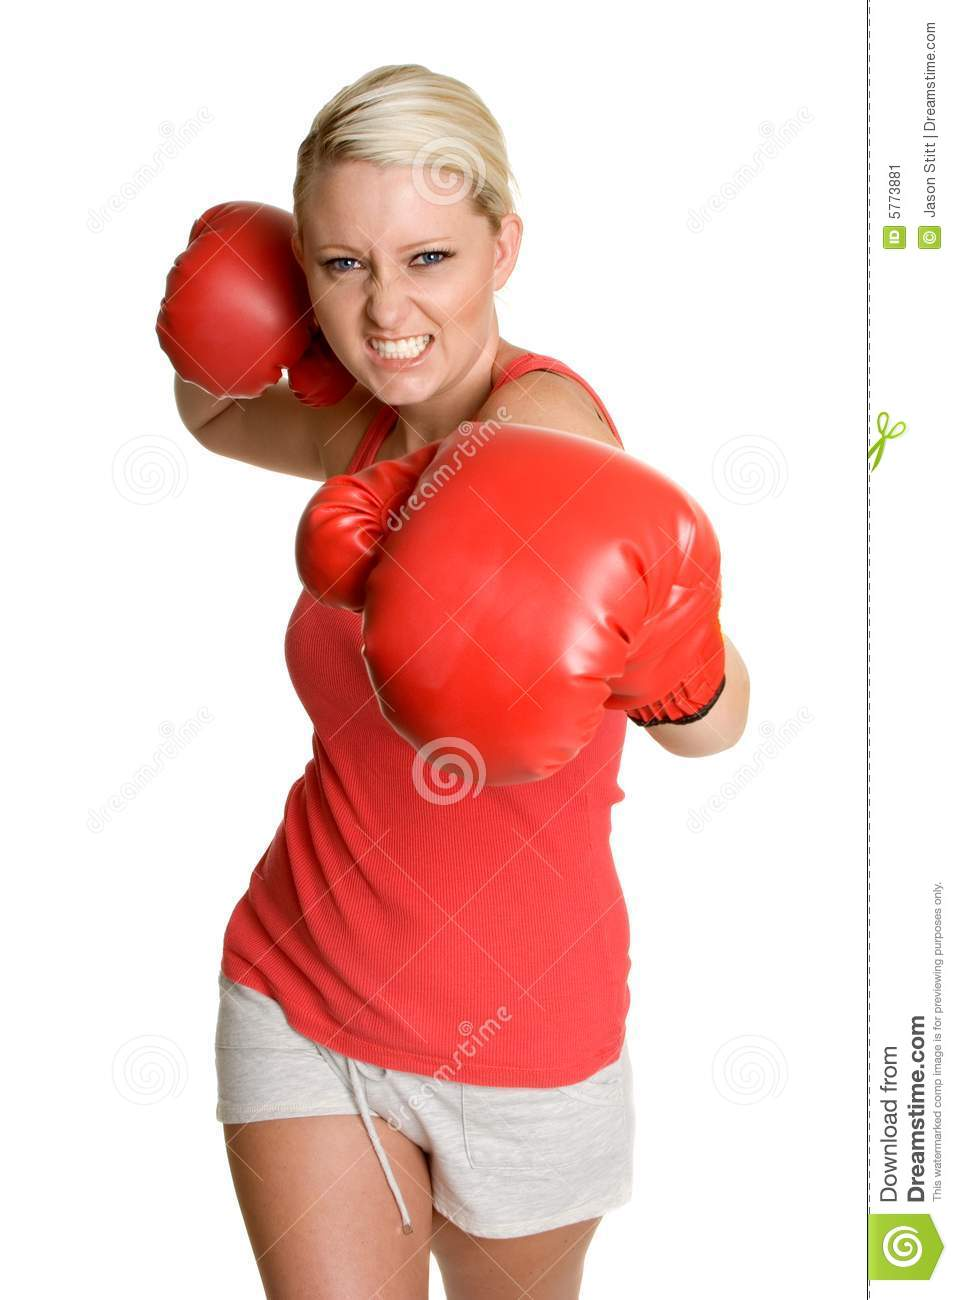 Person Boxing Stock Image - Image: 5773881